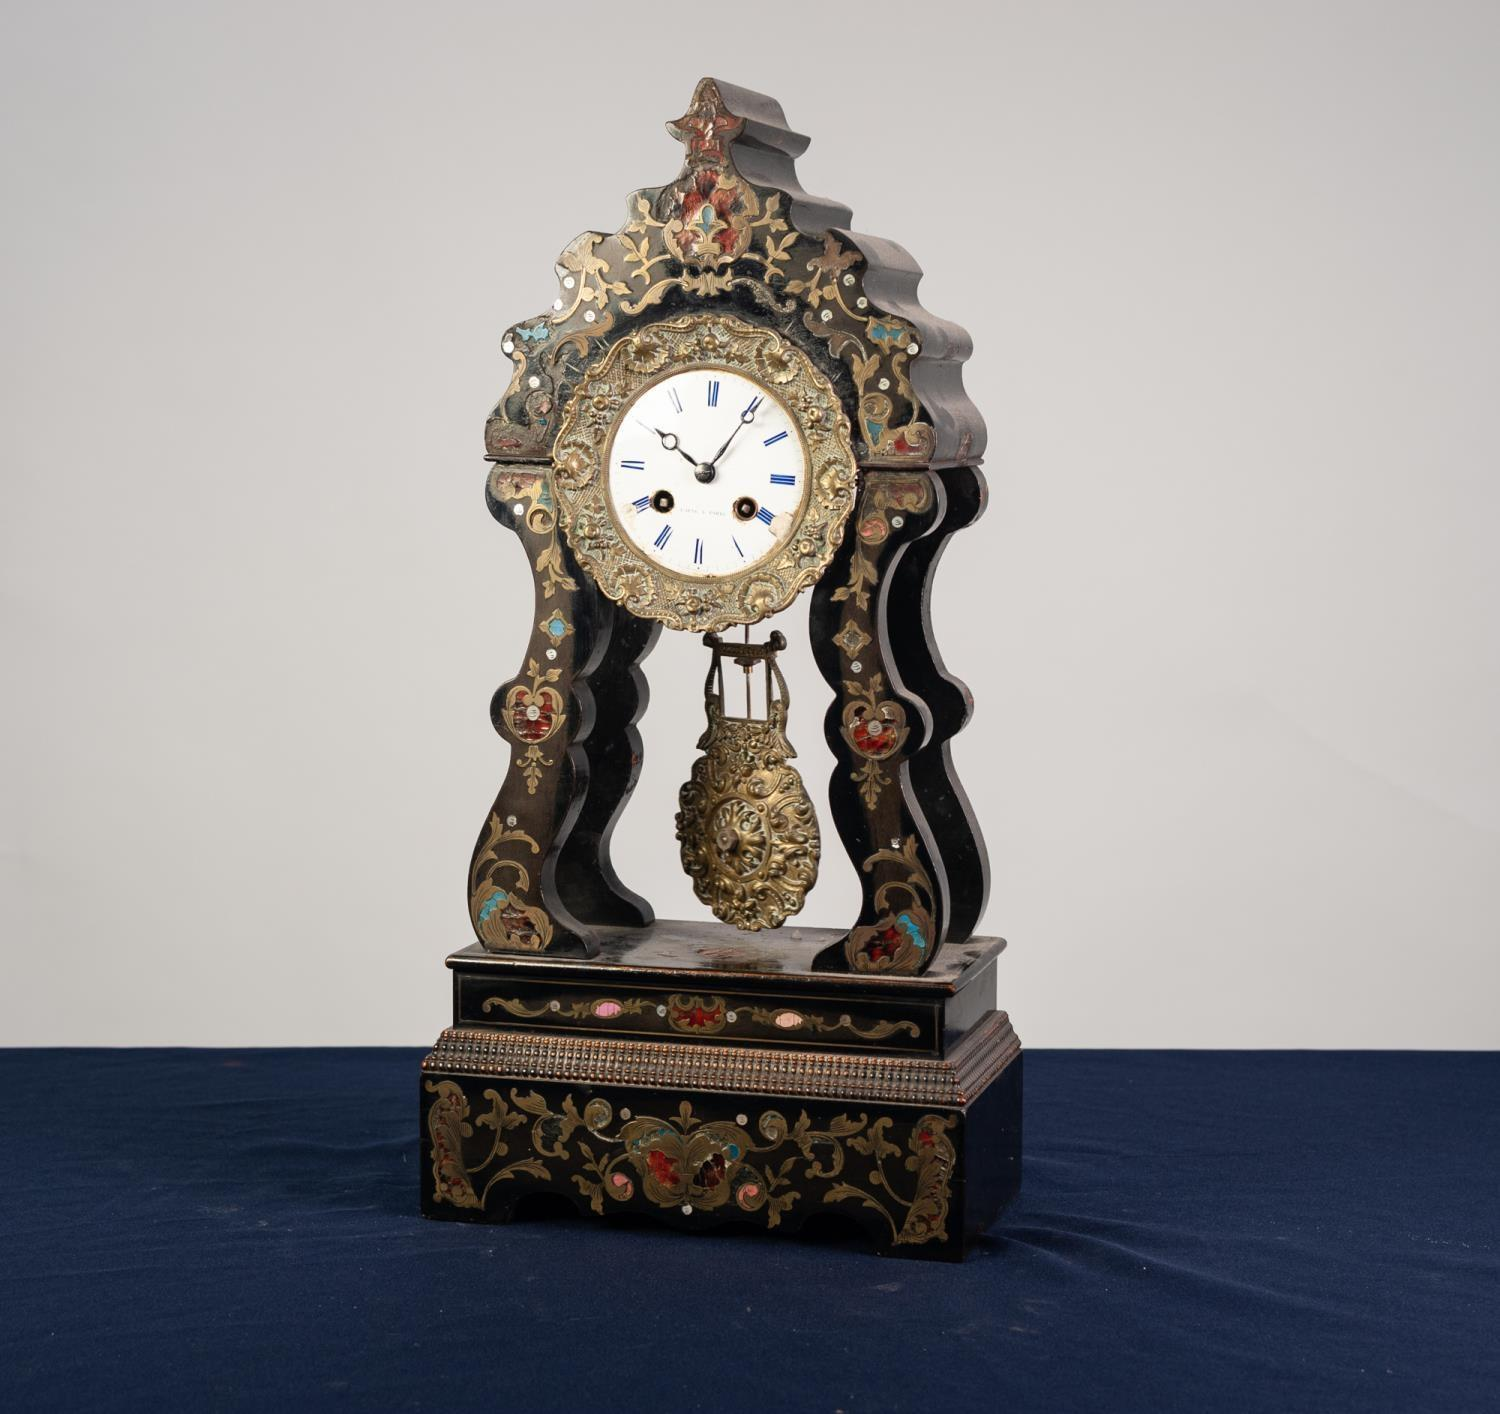 Lot 59 - 19th CENTURY FRENCH PORTICO MANTEL CLOCK, the movement and white enamel dial signed Laine a Paris,